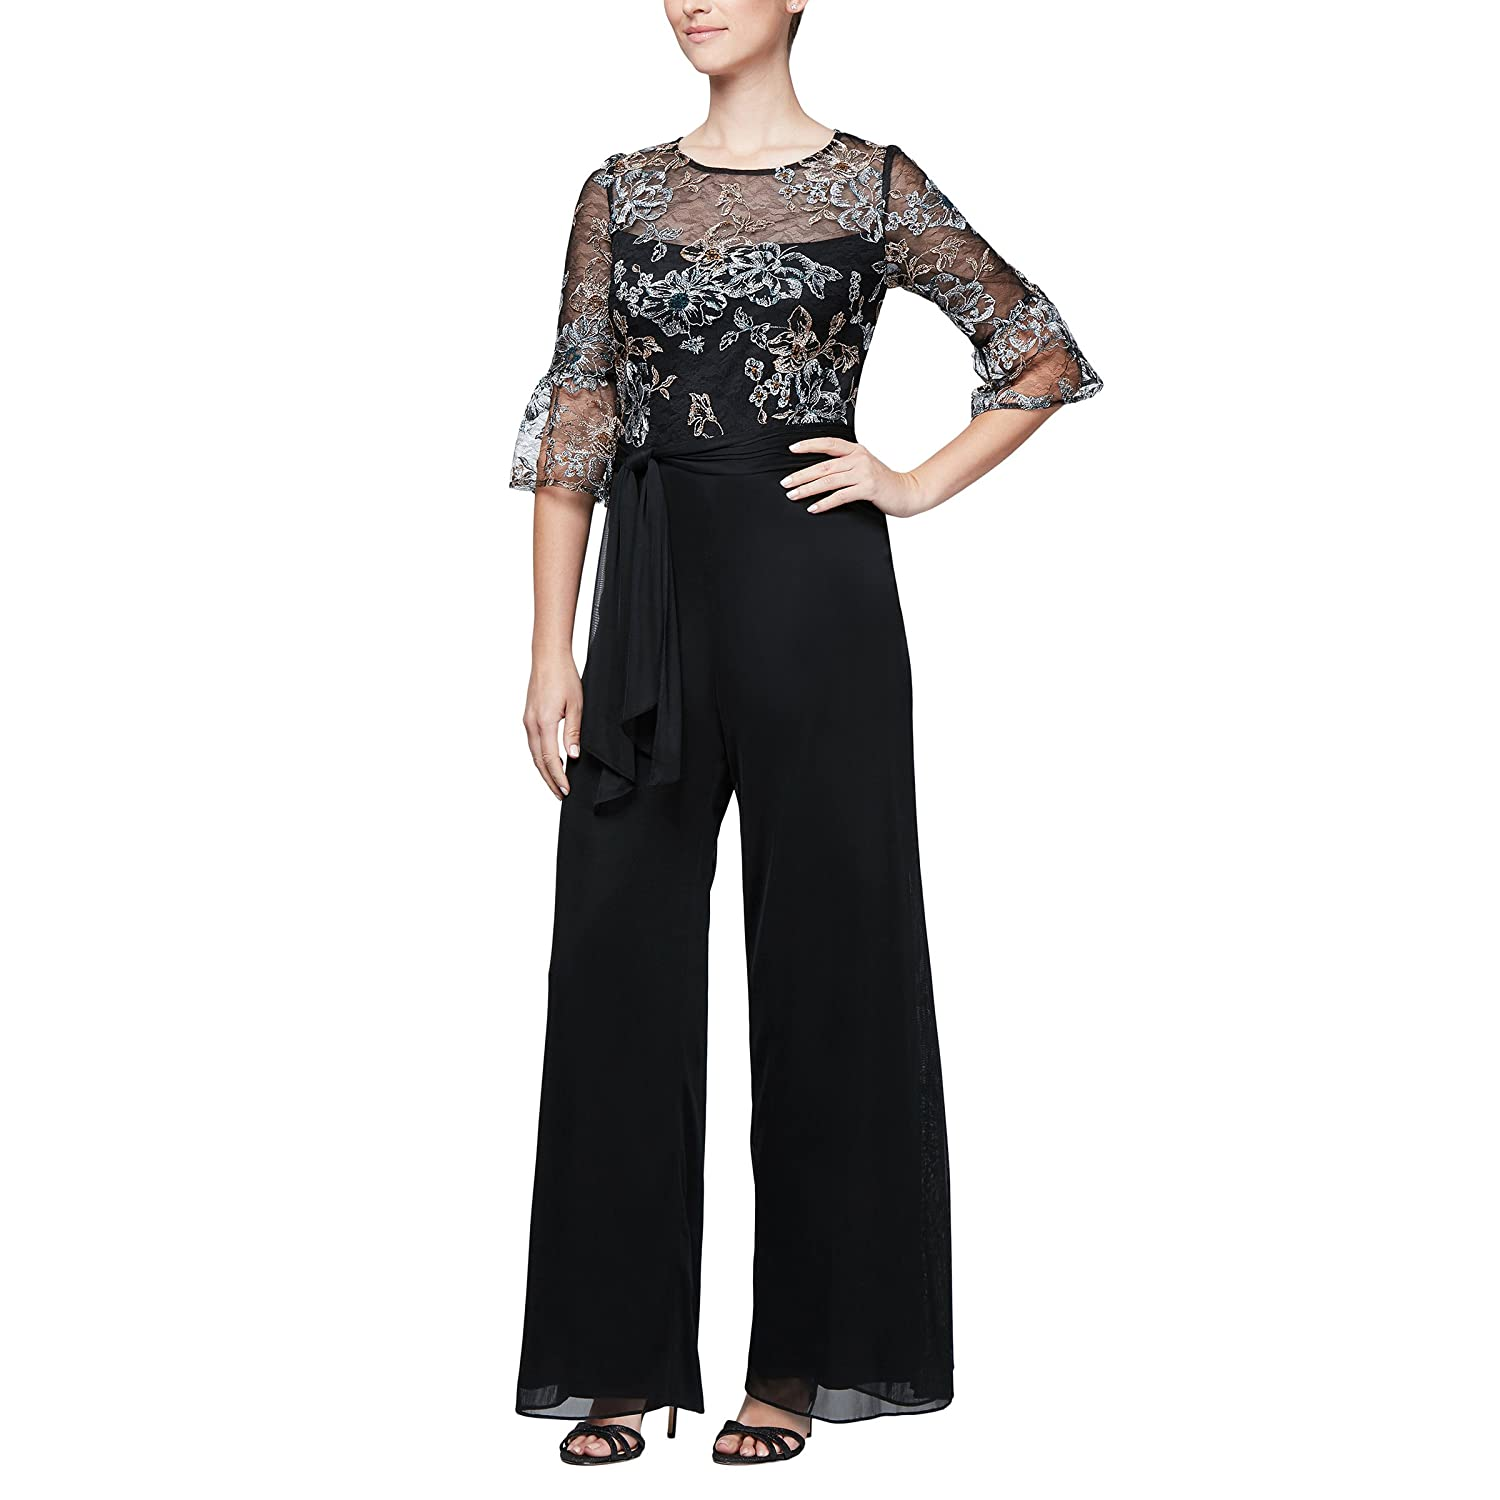 1920s Style Women's Pants, Trousers, Knickers, Tuxedo Alex Evenings Womens Embroidered Jumpsuit Illusion Bell Sleeves $229.00 AT vintagedancer.com